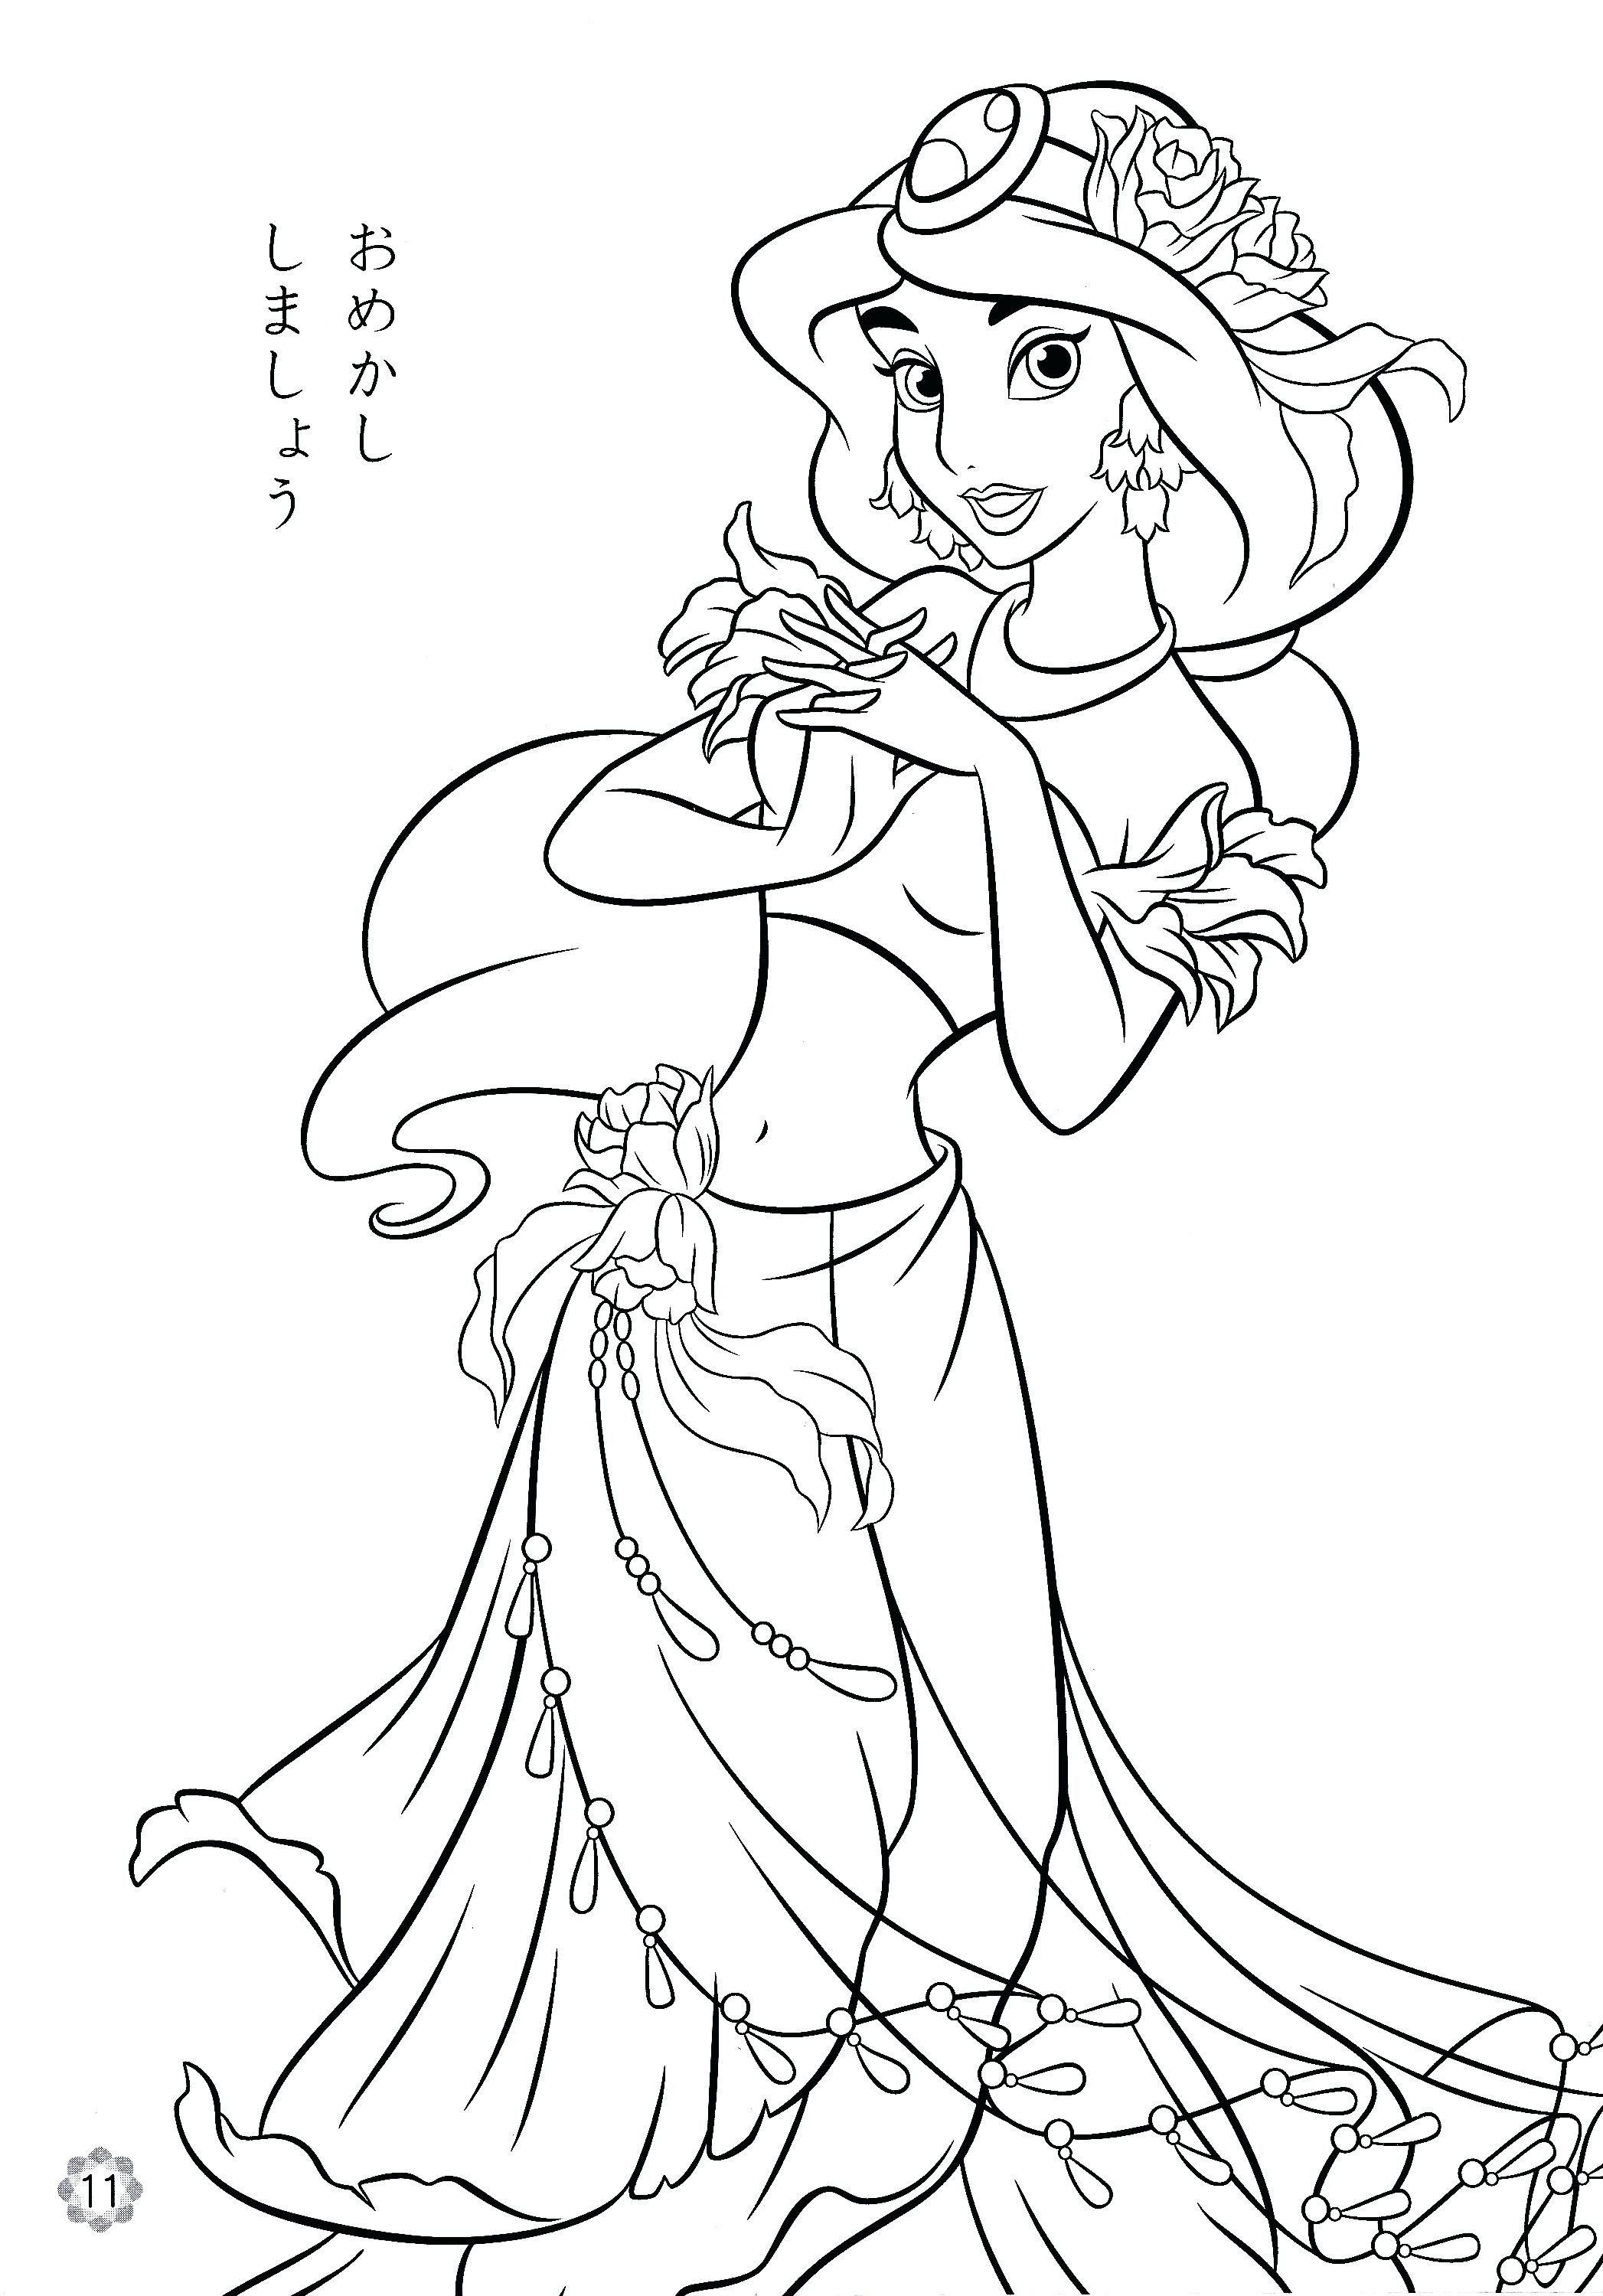 Princess Jasmine Coloring Page Printable – From the thousands of